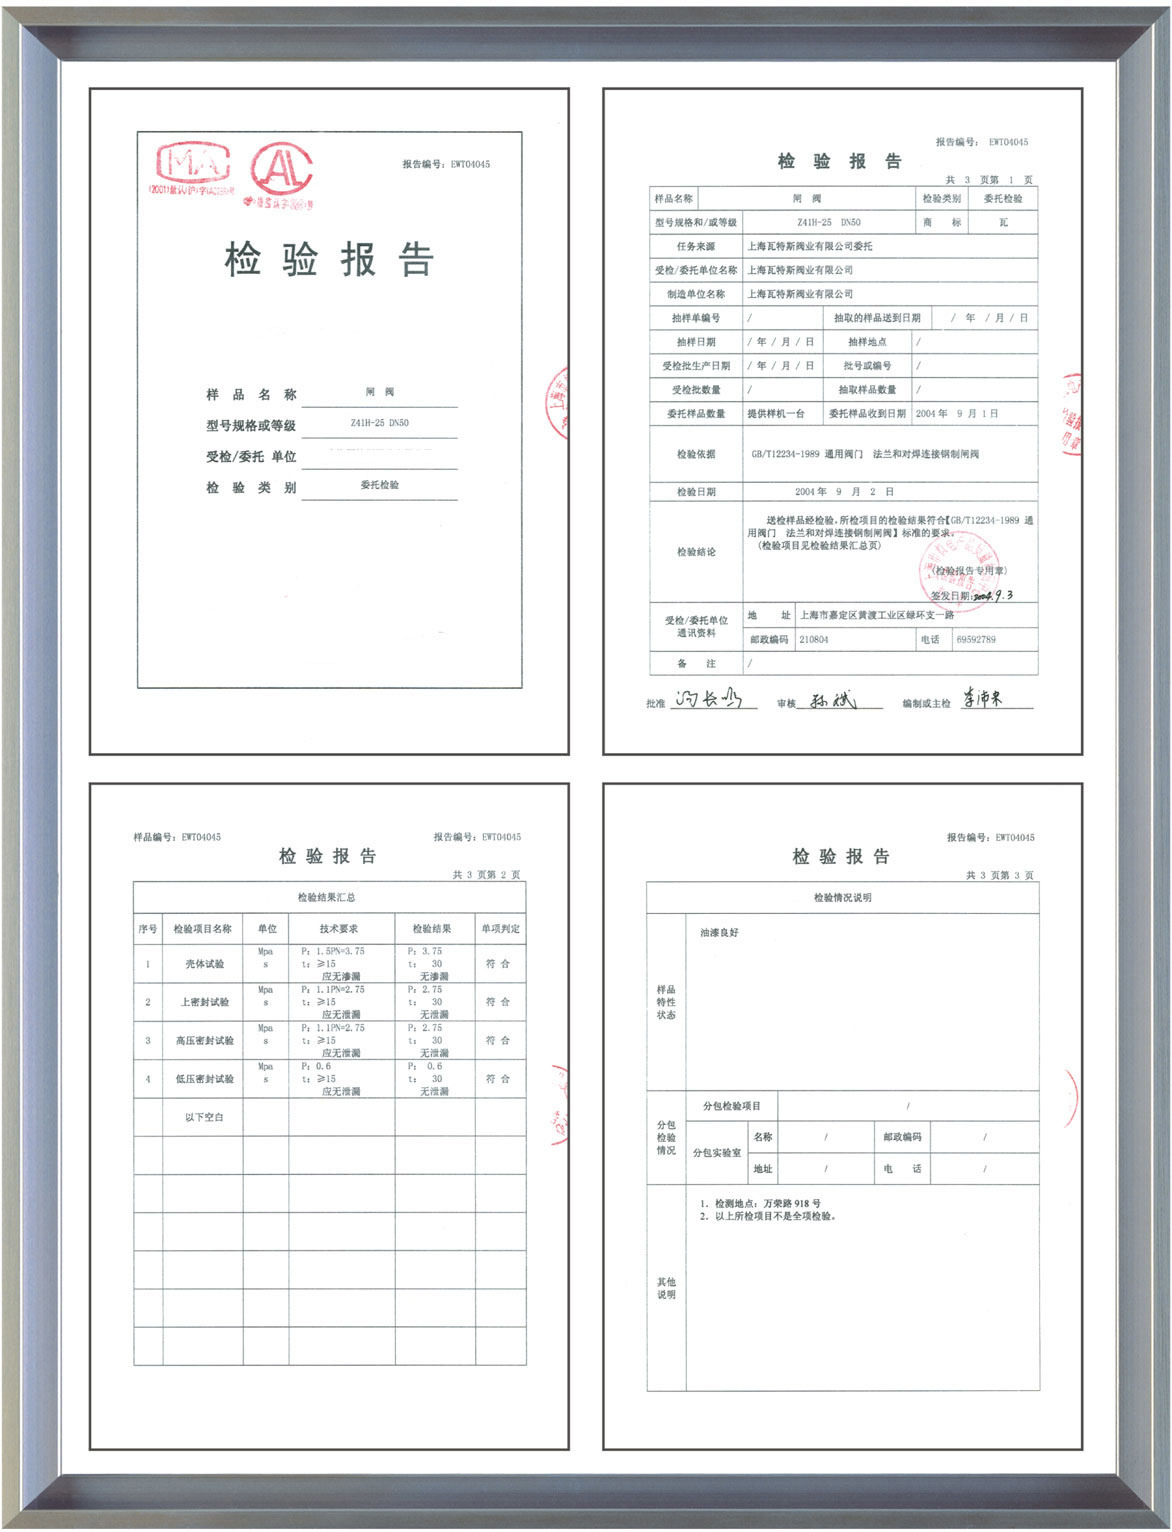 Professional Freight Agent in China - Quality Inspection and Order Tracking